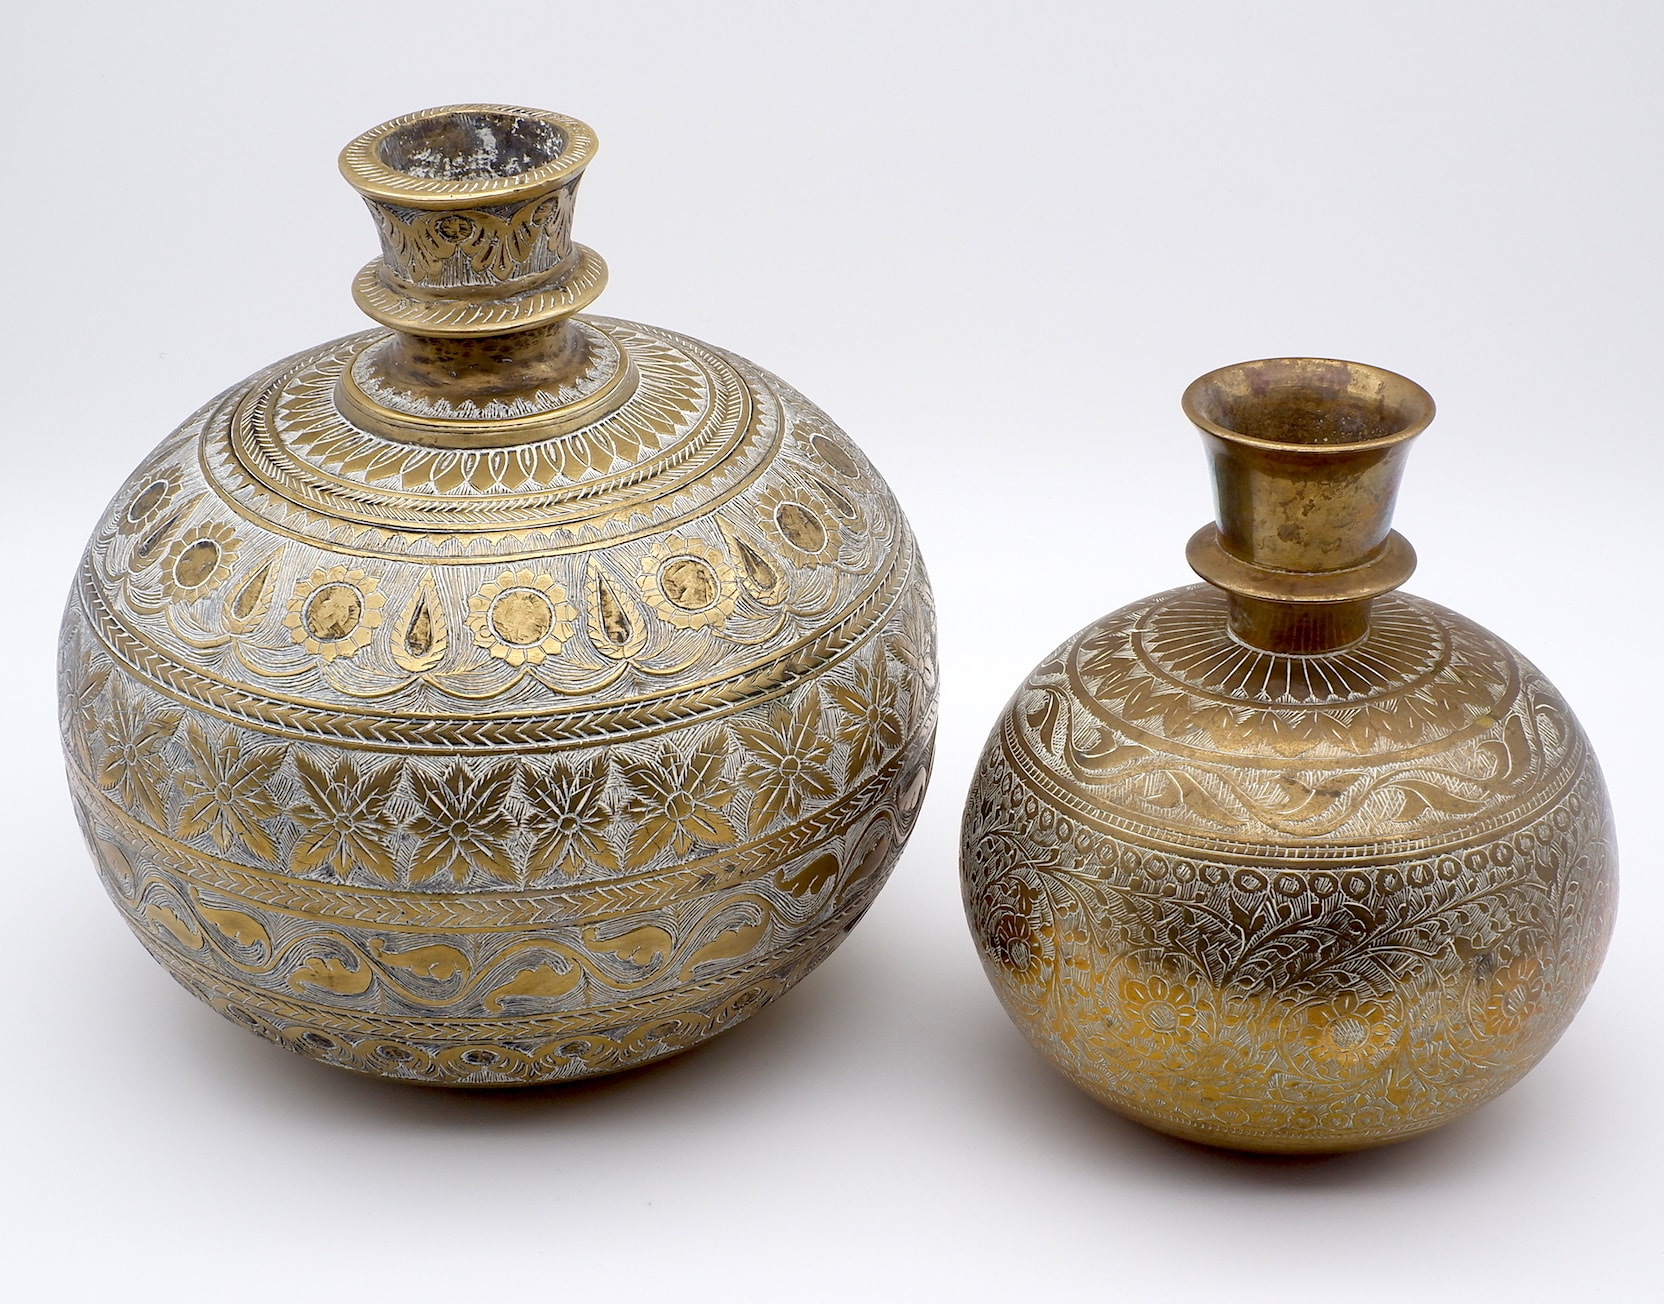 'Two Indian Mughal Cast and Engraved Brass Water Vessels or Lota, Deccan 19th or Early 20th Century'